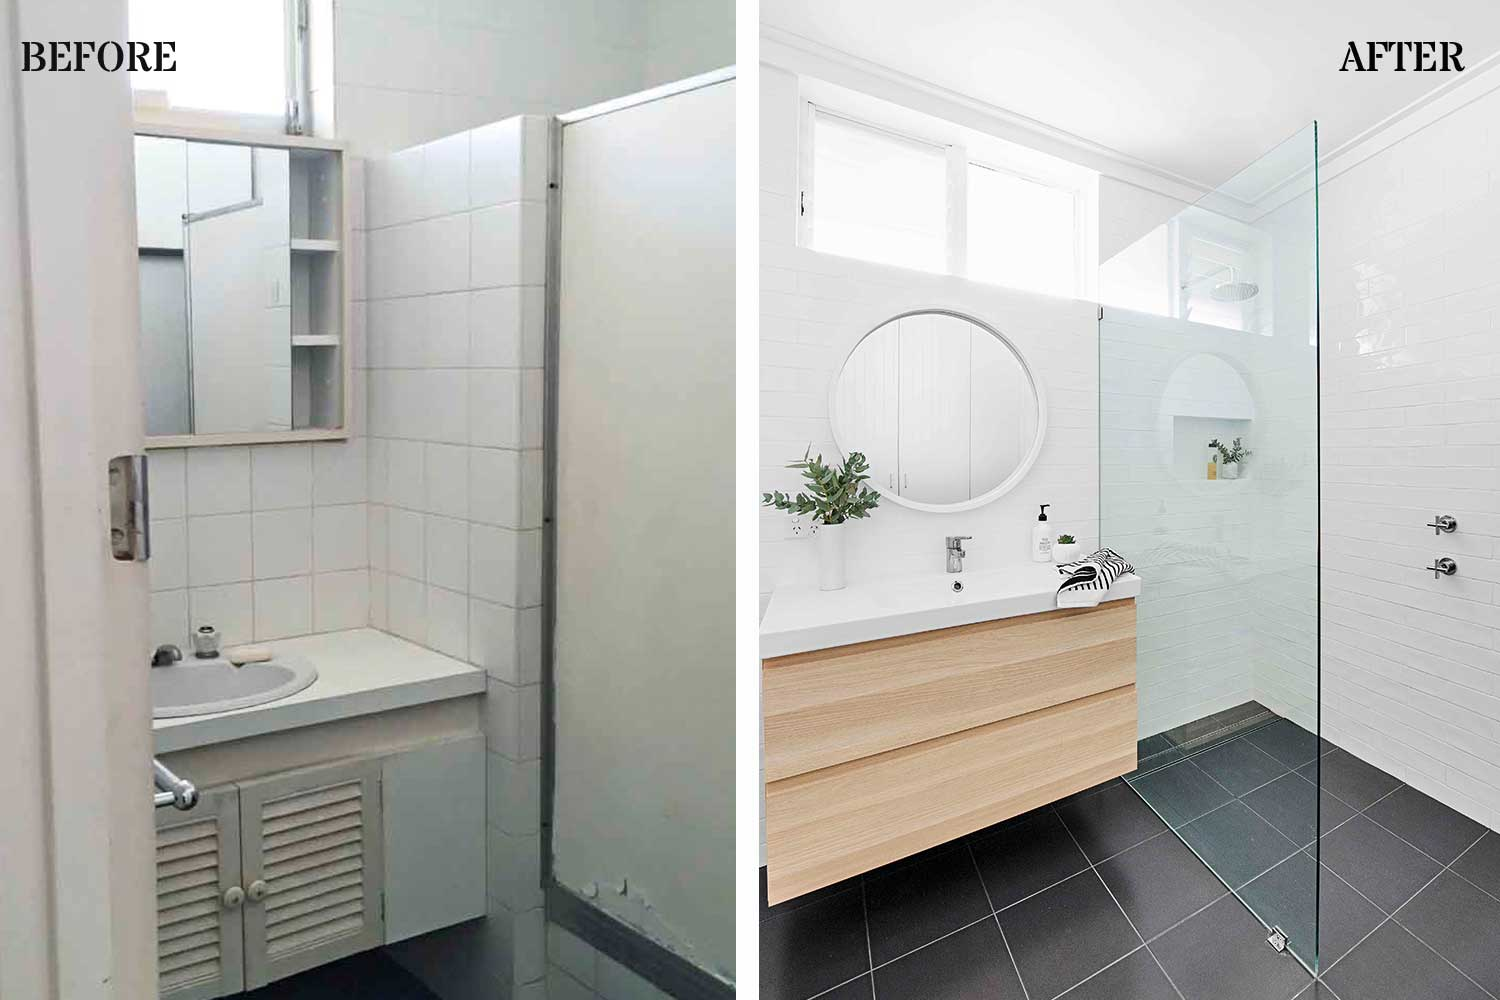 Before after bathroom makeover renovated from disaster - Bathroom renovations under 10000 ...